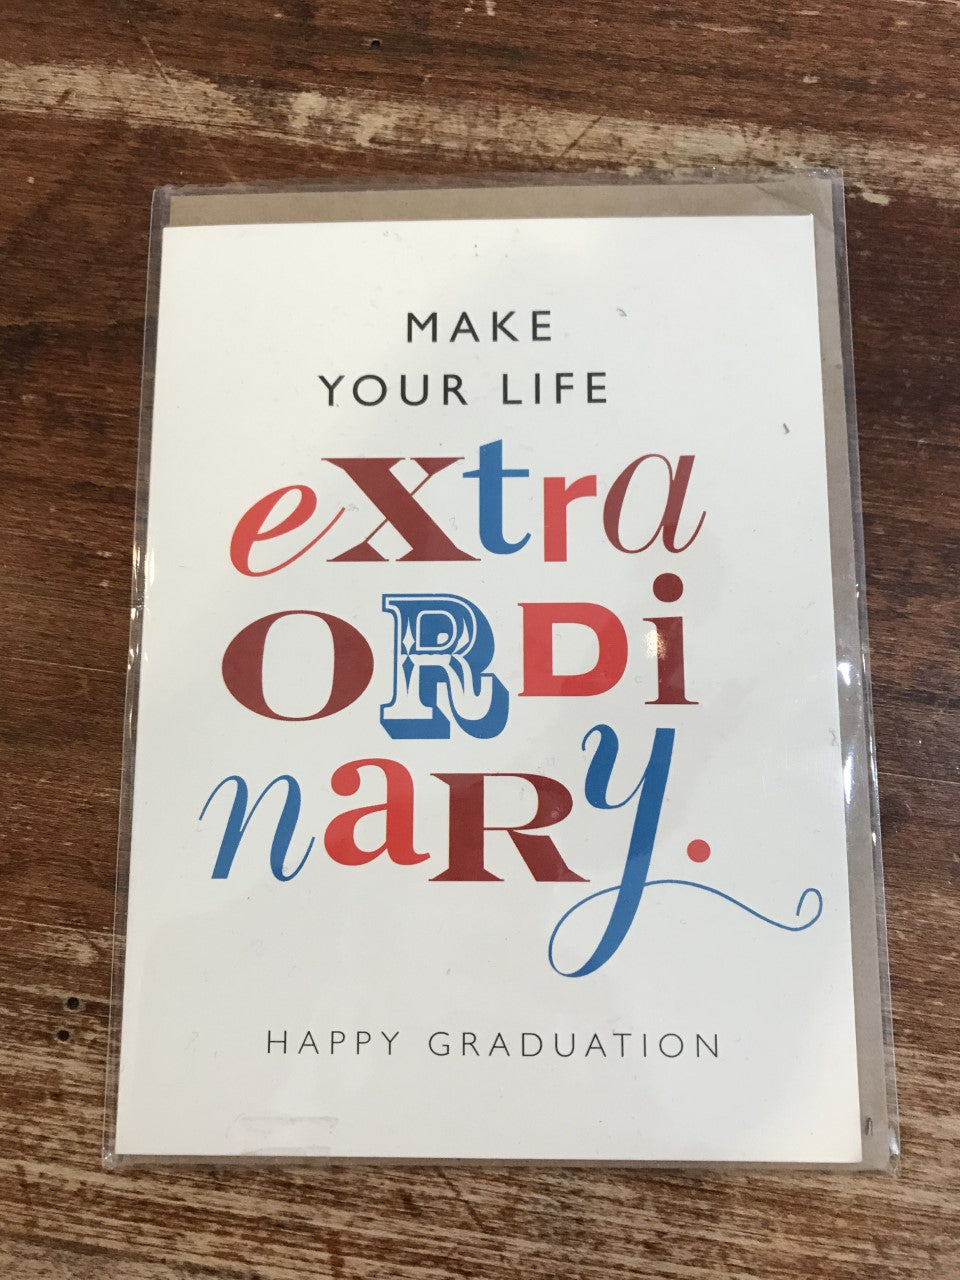 J. Falkner Graduation Card-Make Your Life Extraordinary